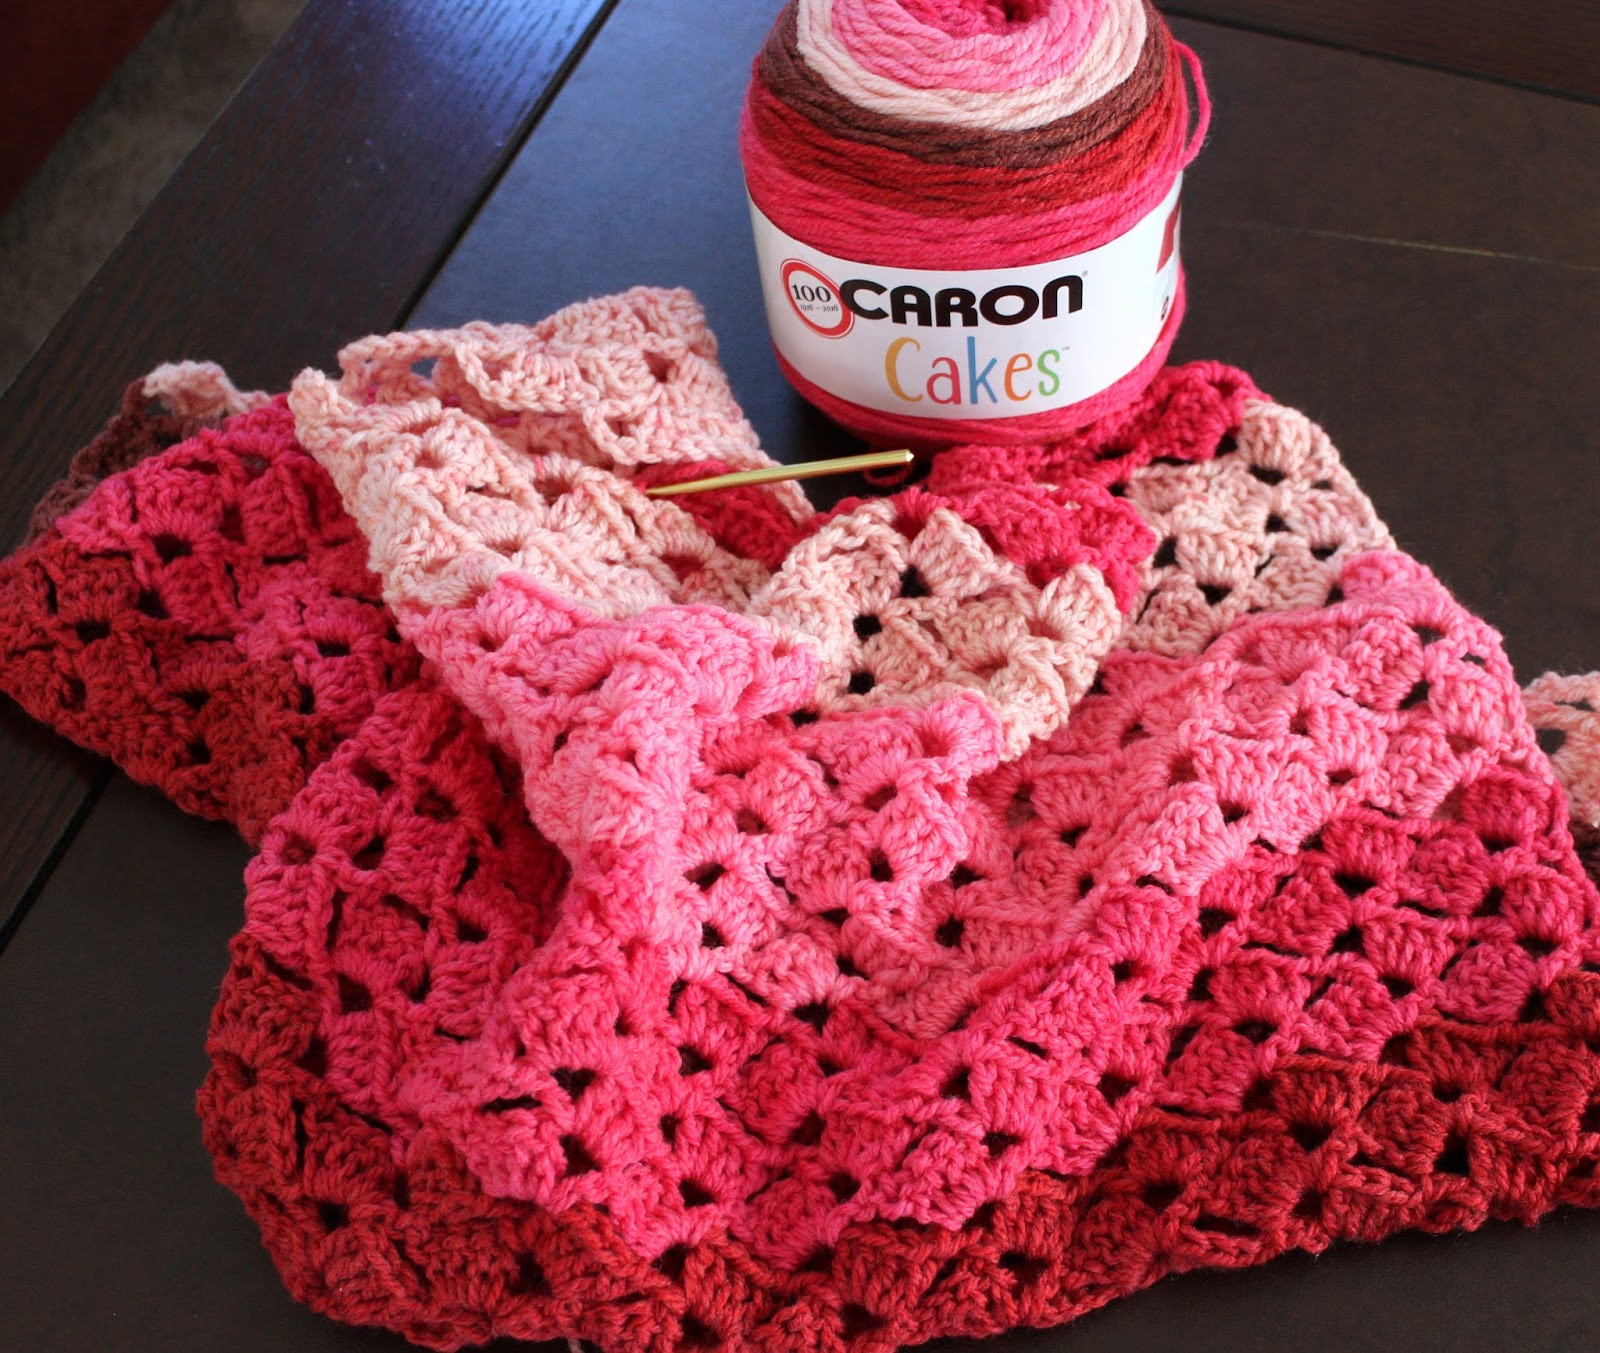 Awesome Lacy Crochet My First Caron Cakes In Cherry Chip Yarn Review Caron Cakes Crochet Patterns Of Luxury 41 Models Caron Cakes Crochet Patterns